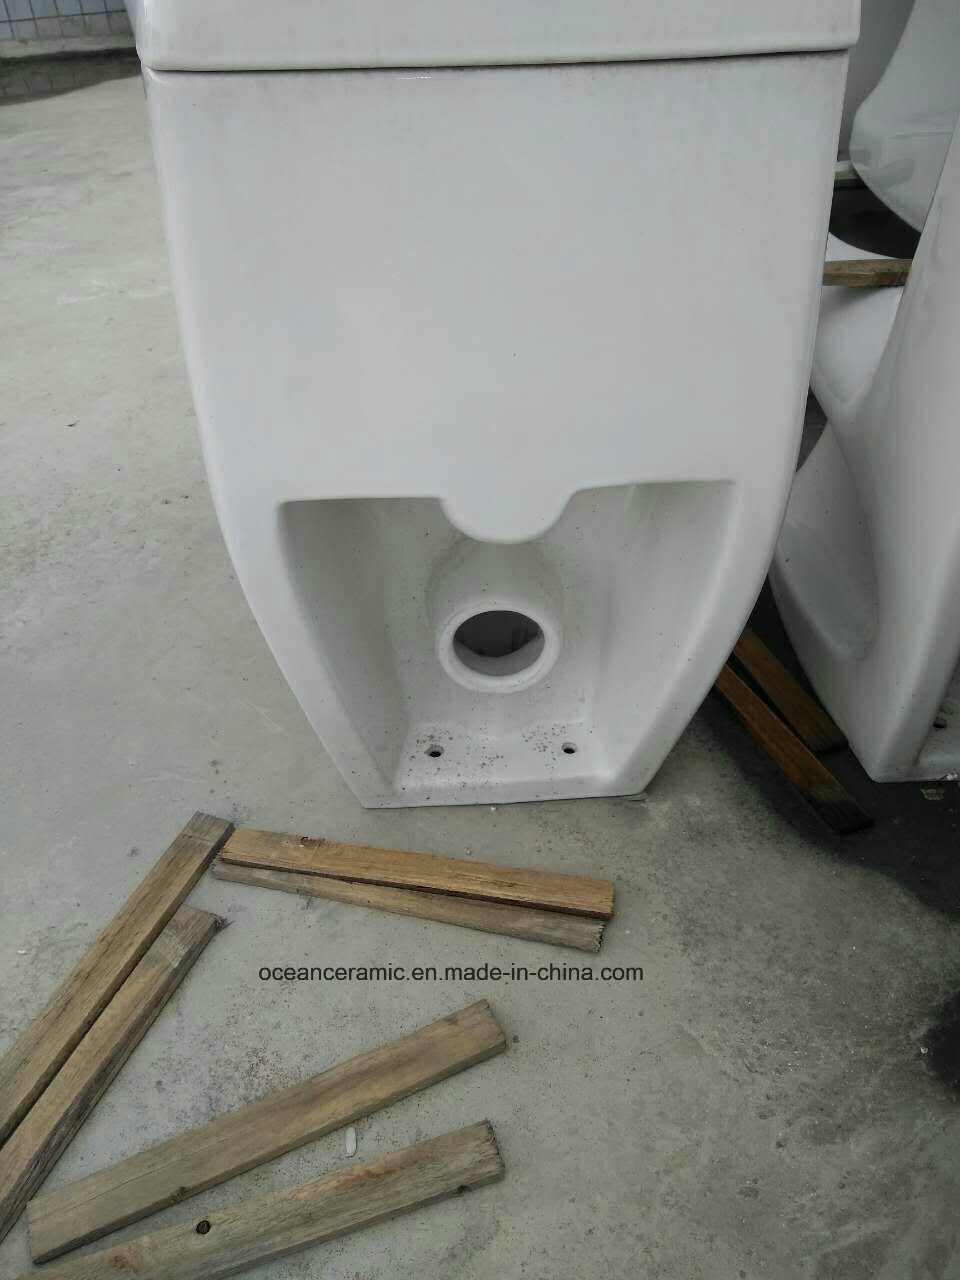 350 White Washdown P Trap 180mm One-Piece Toilet with Cheap Price and Good Quality